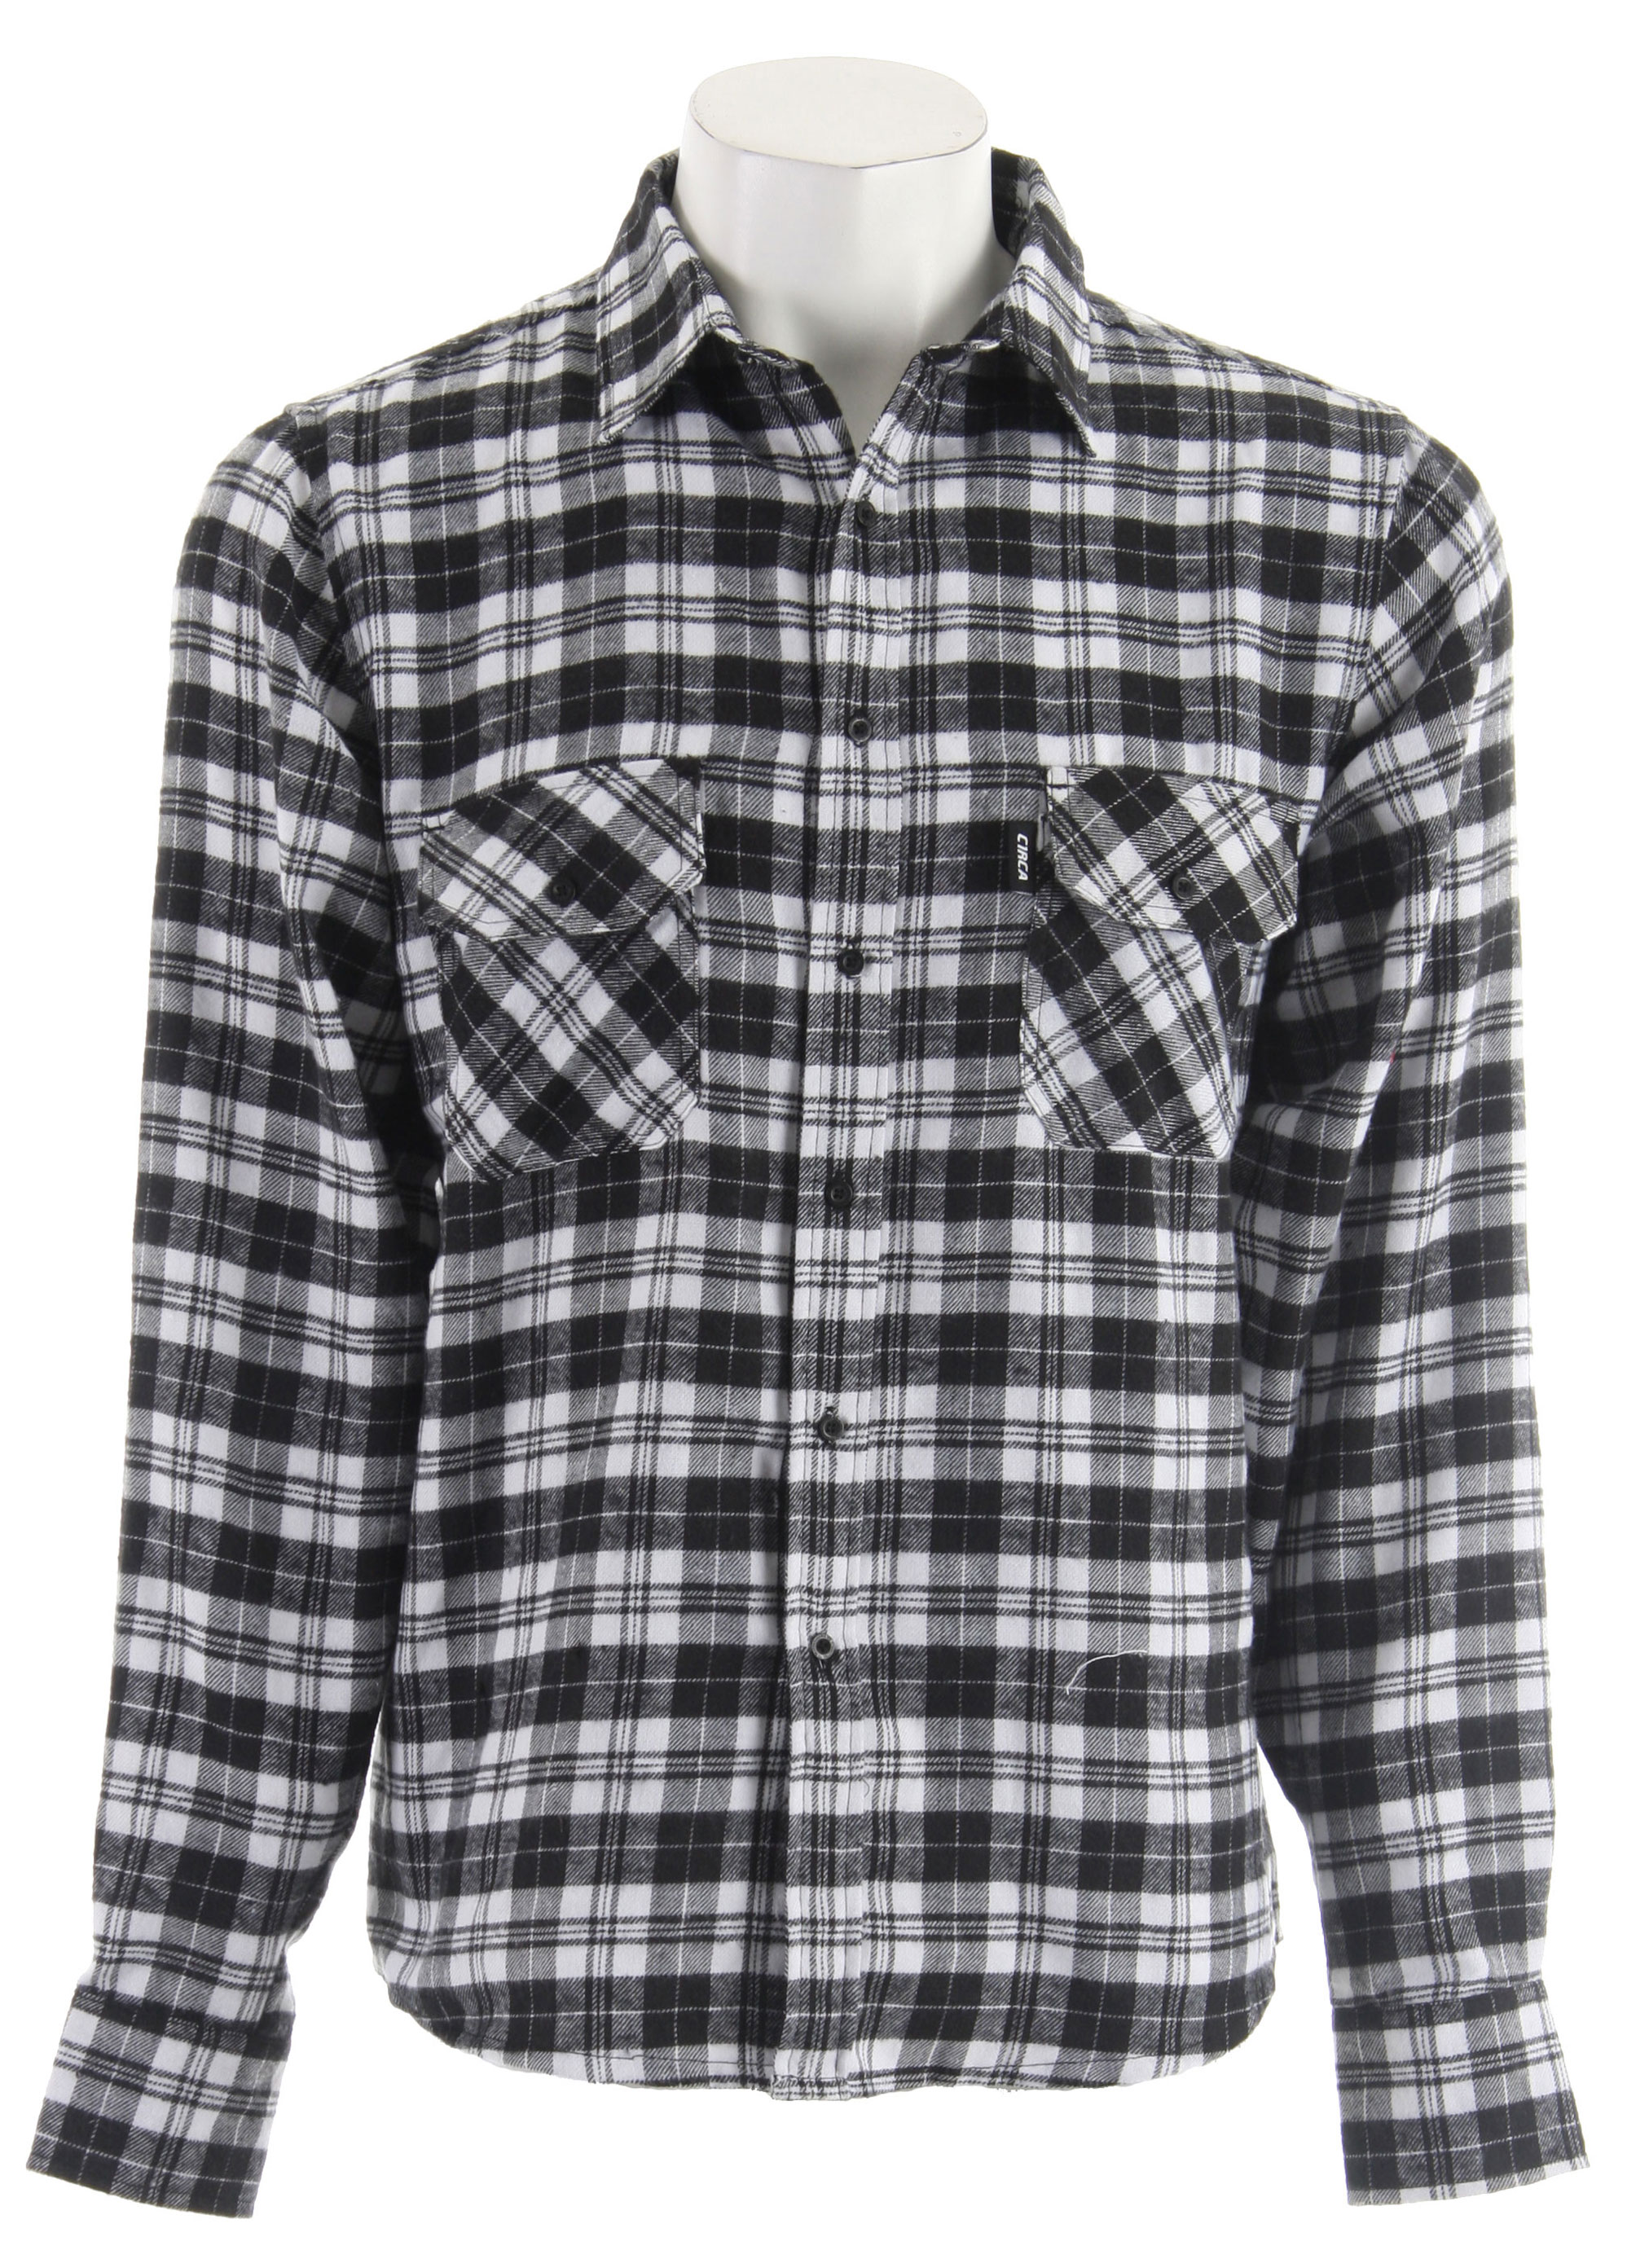 Key Features of the Circa Avenger Flannel Shirt: 100% Cotton Standard Fit Brushed plaid fabric Chest pockets with button flaps Woven label branding - $22.95